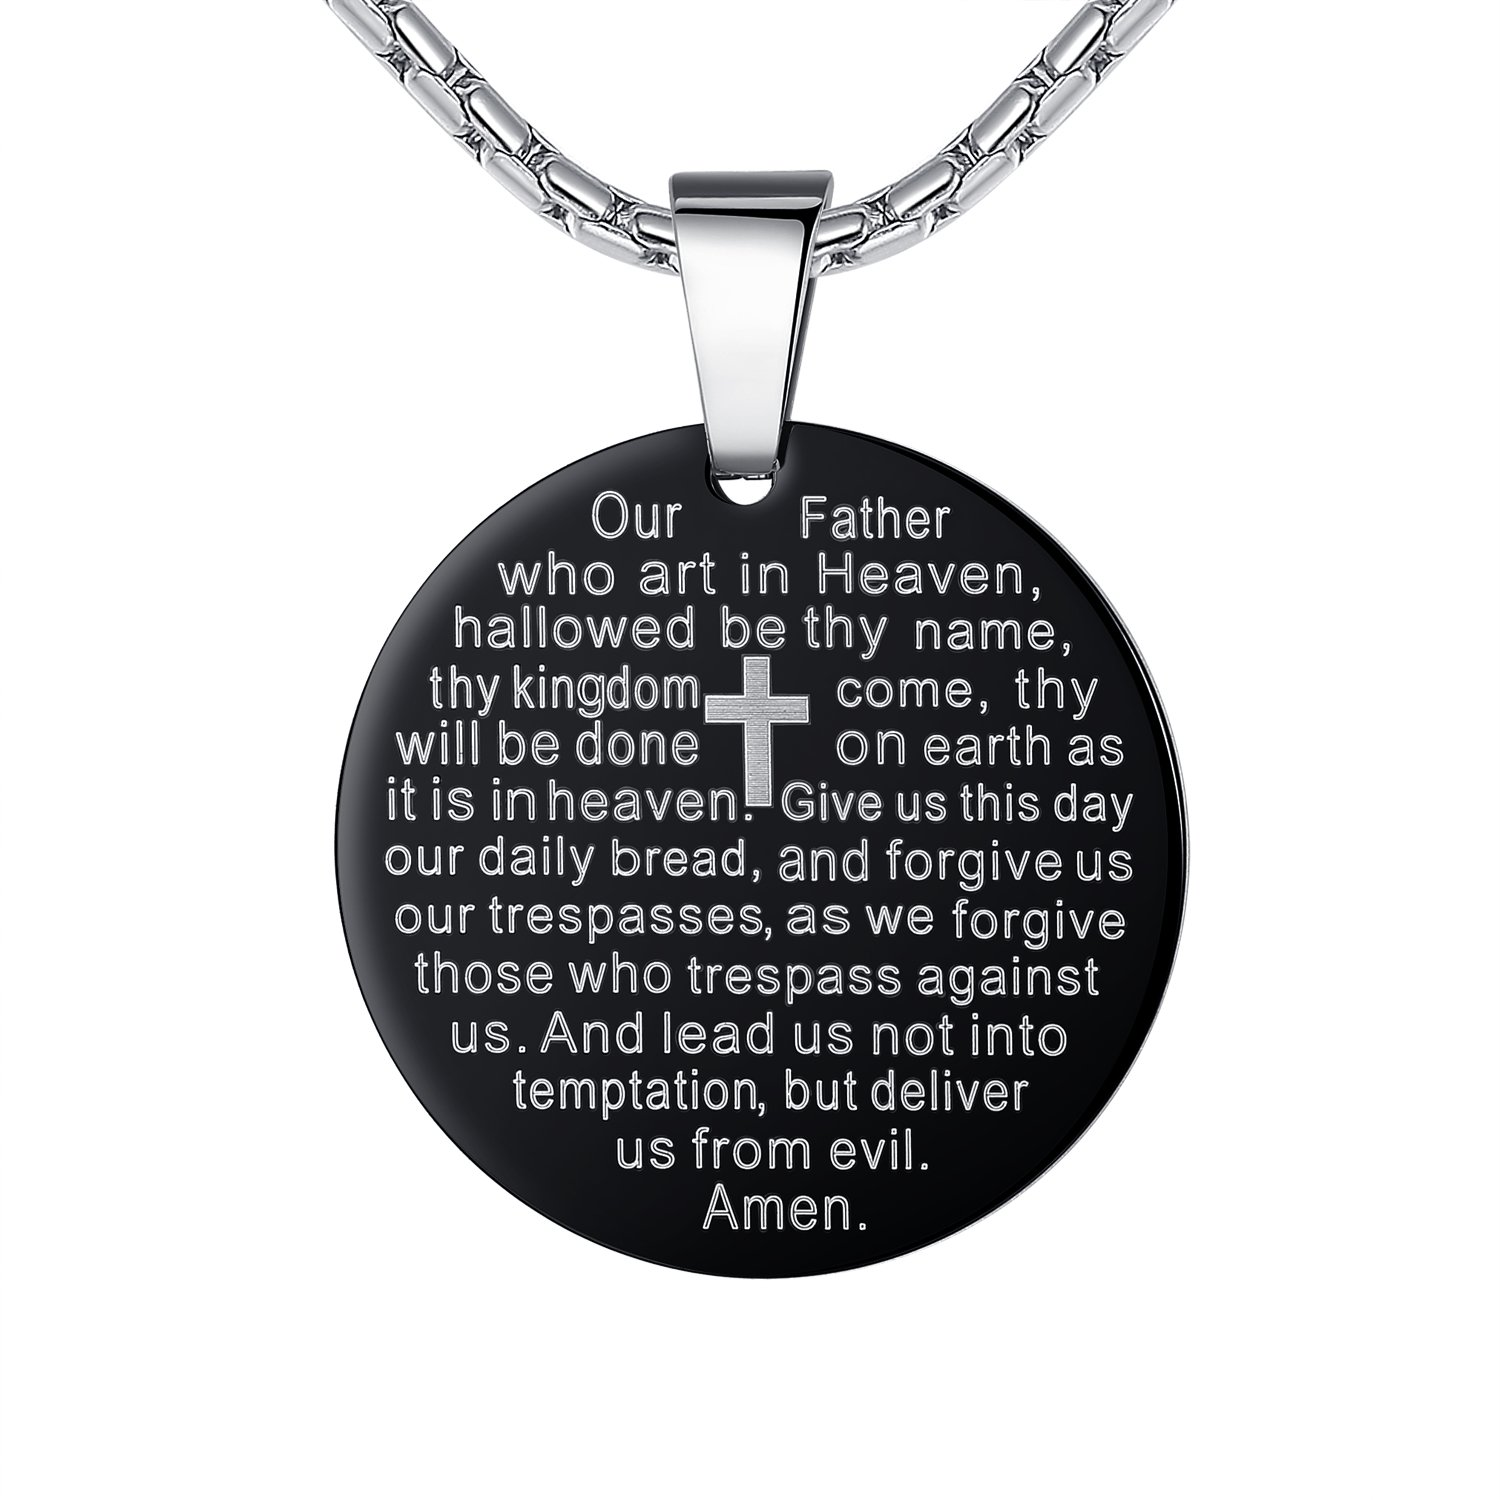 pendant lord serenity beautiful an engraved tag oval stainless itm steel on necklace prayer religion god